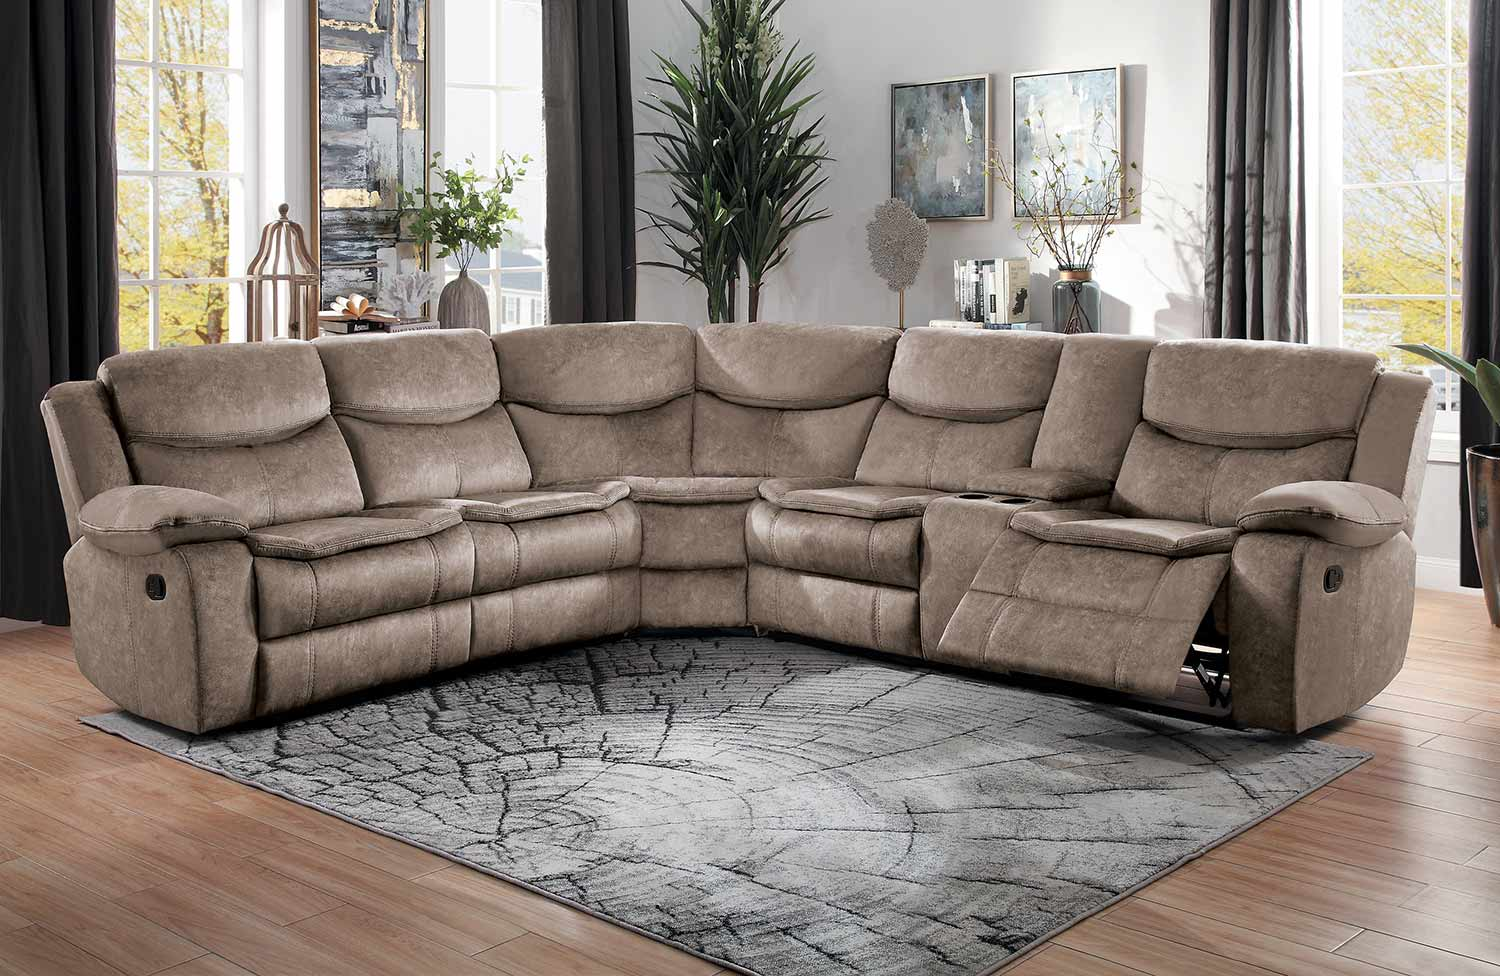 Homelegance Bastrop Reclining Sectional Sofa Set - Brown